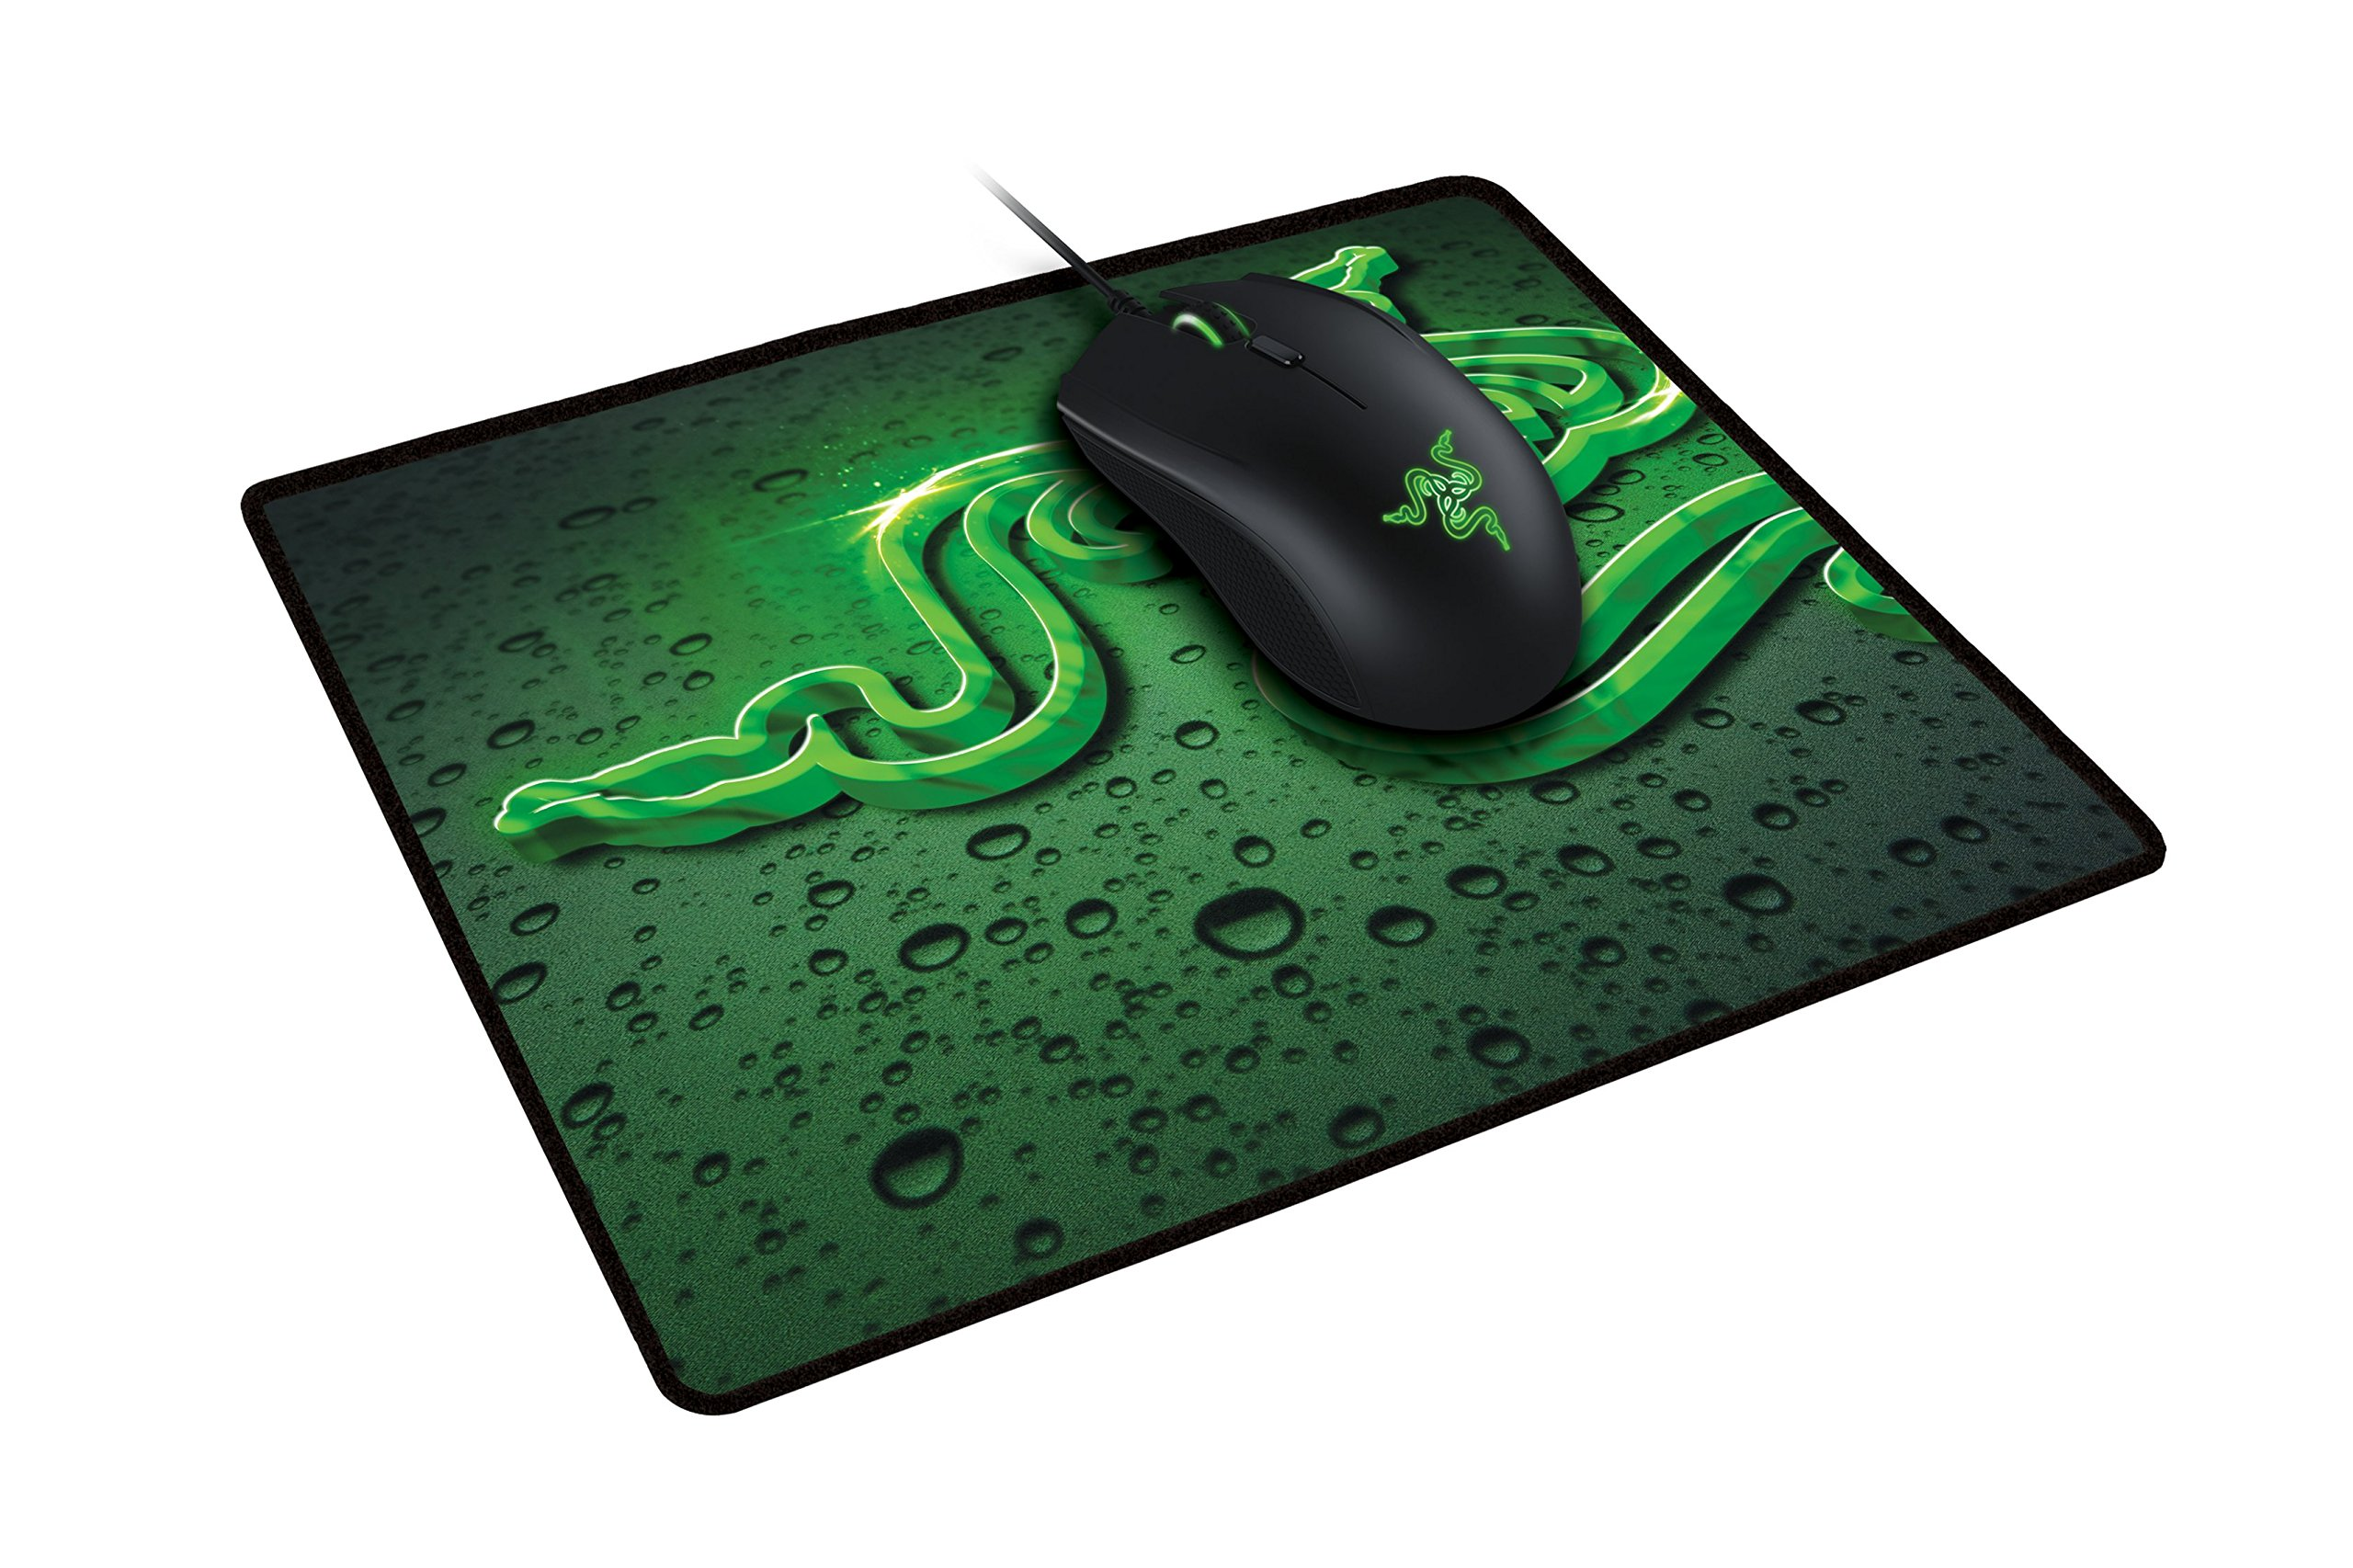 Razer Gaming Starter Bundle - Abyssus 2000 Gaming Mouse and Goliathus Speed Terra Mouse Mat by Razer